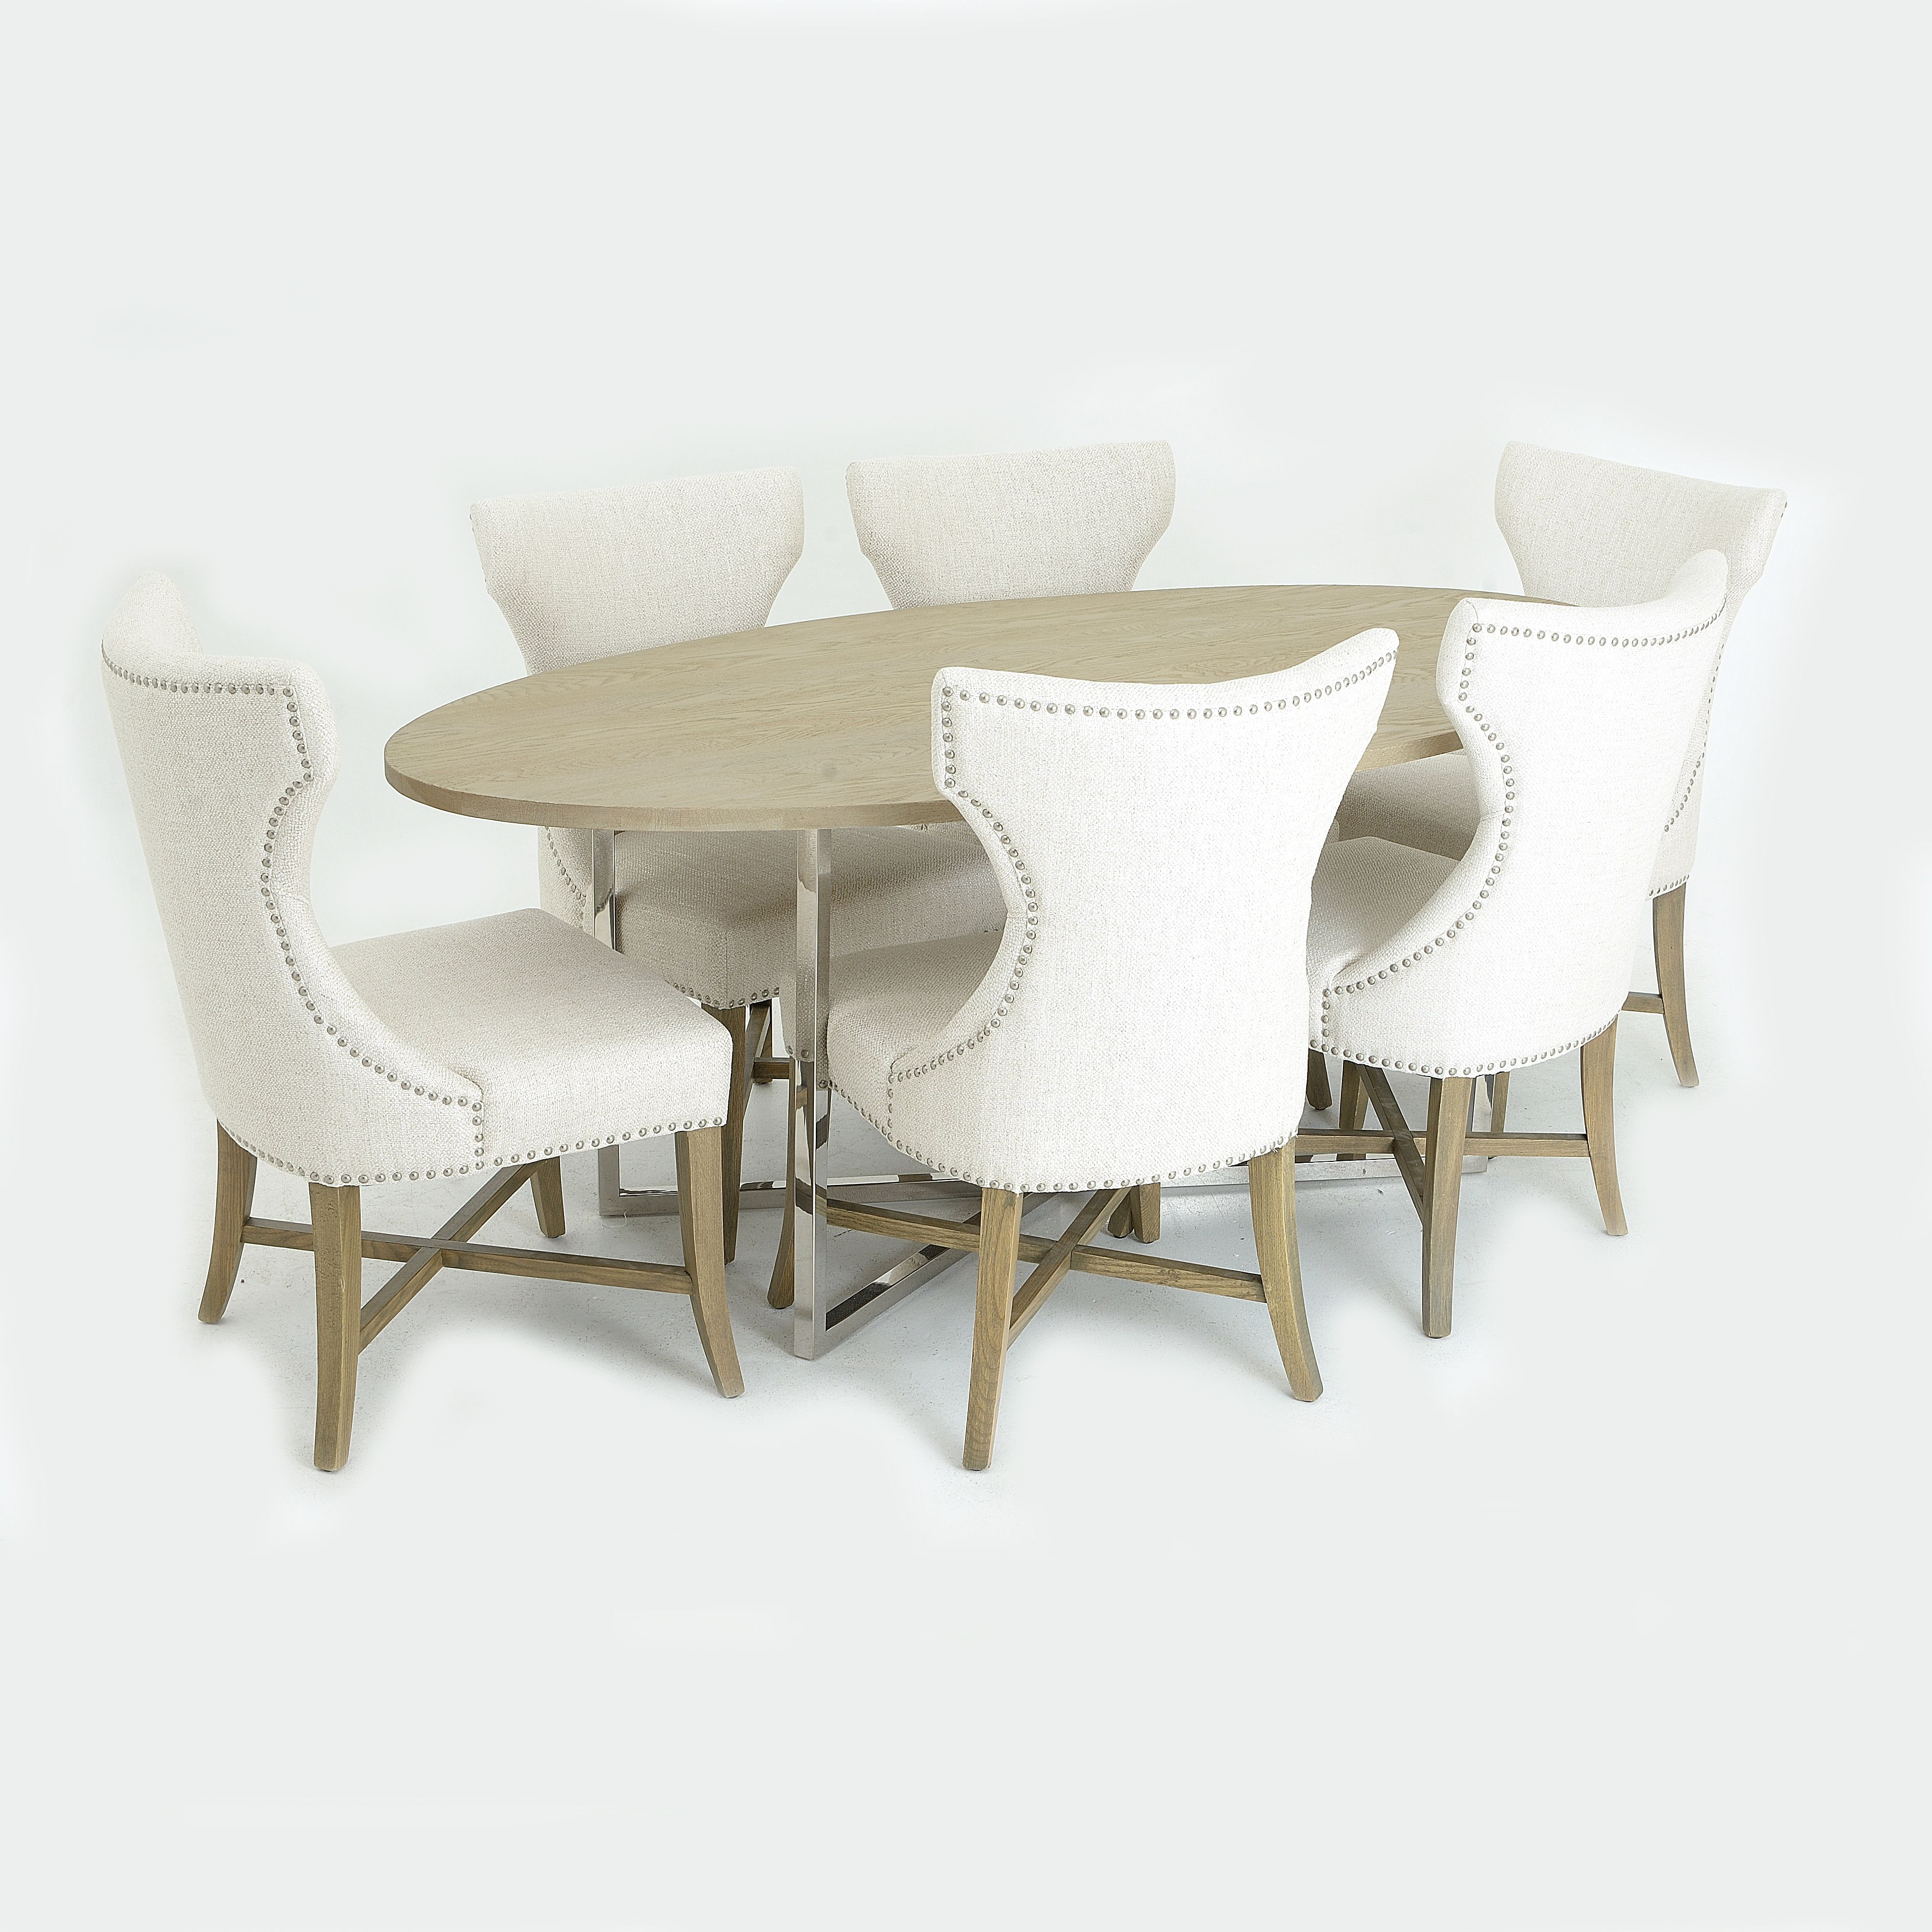 Luxury Dining Table Buy Online In Dubai Luxury Dining Tables